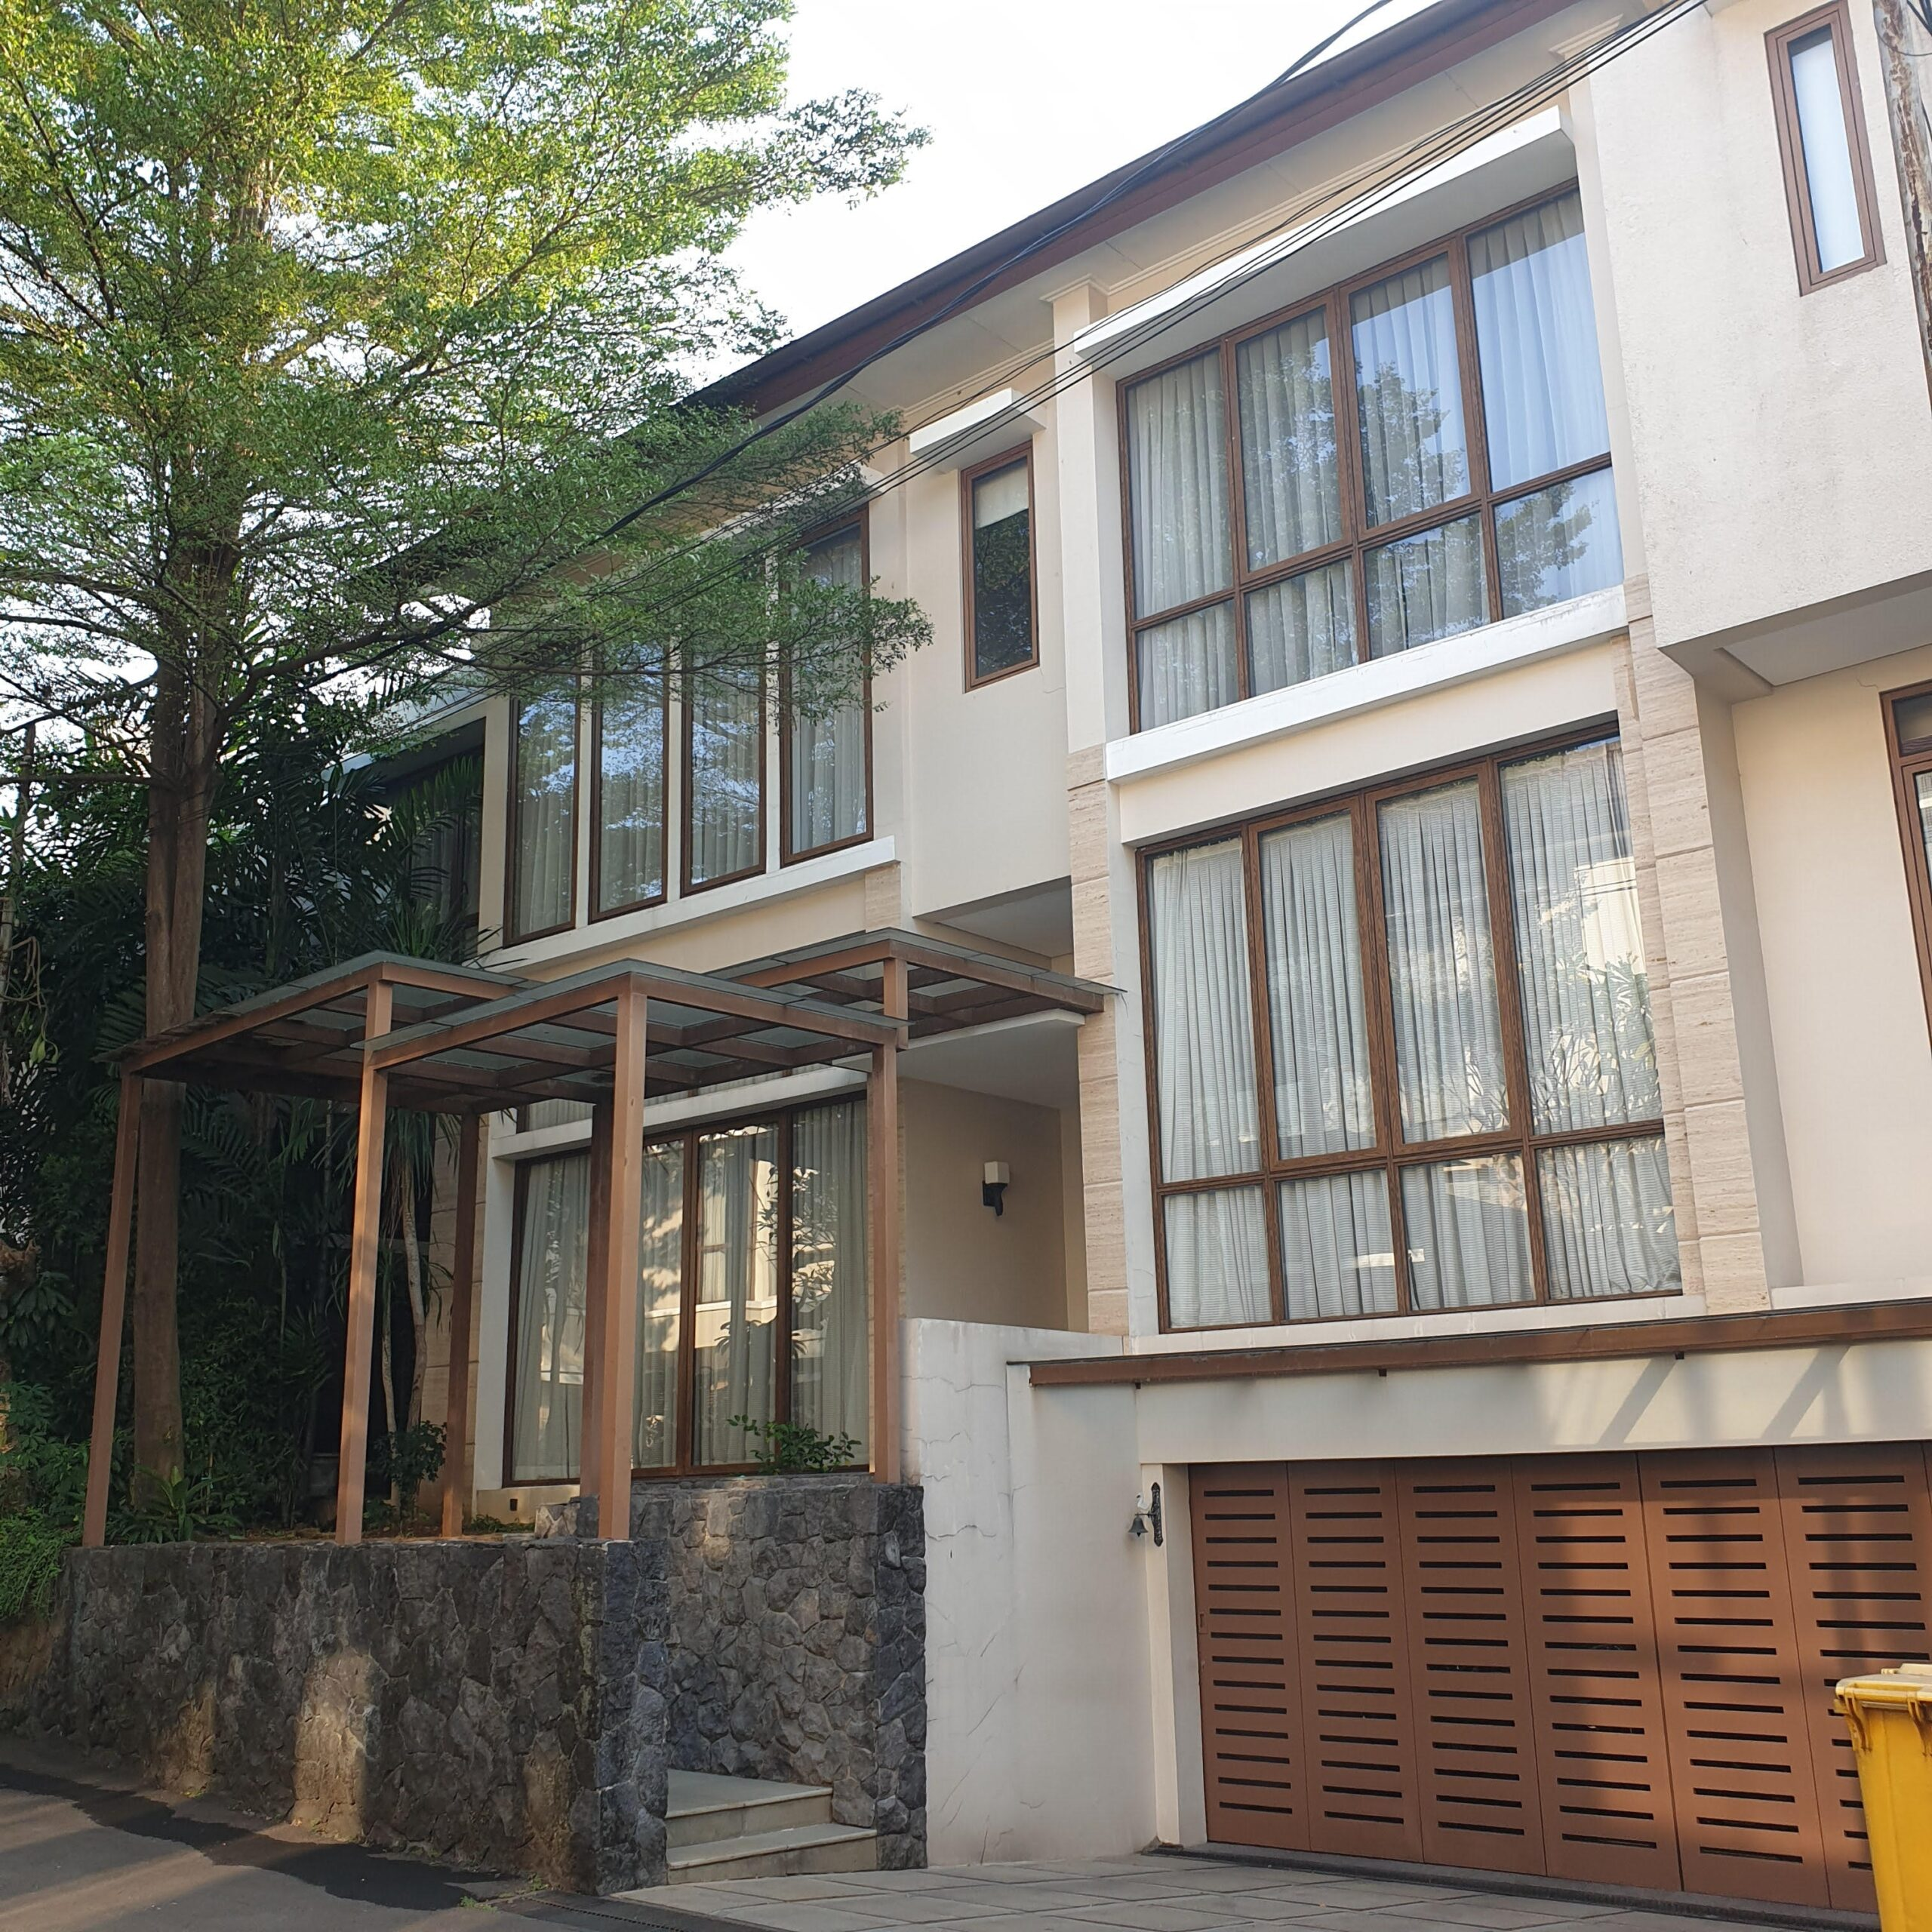 New townhouse with tropical & modern style at Jeruk purut kemang